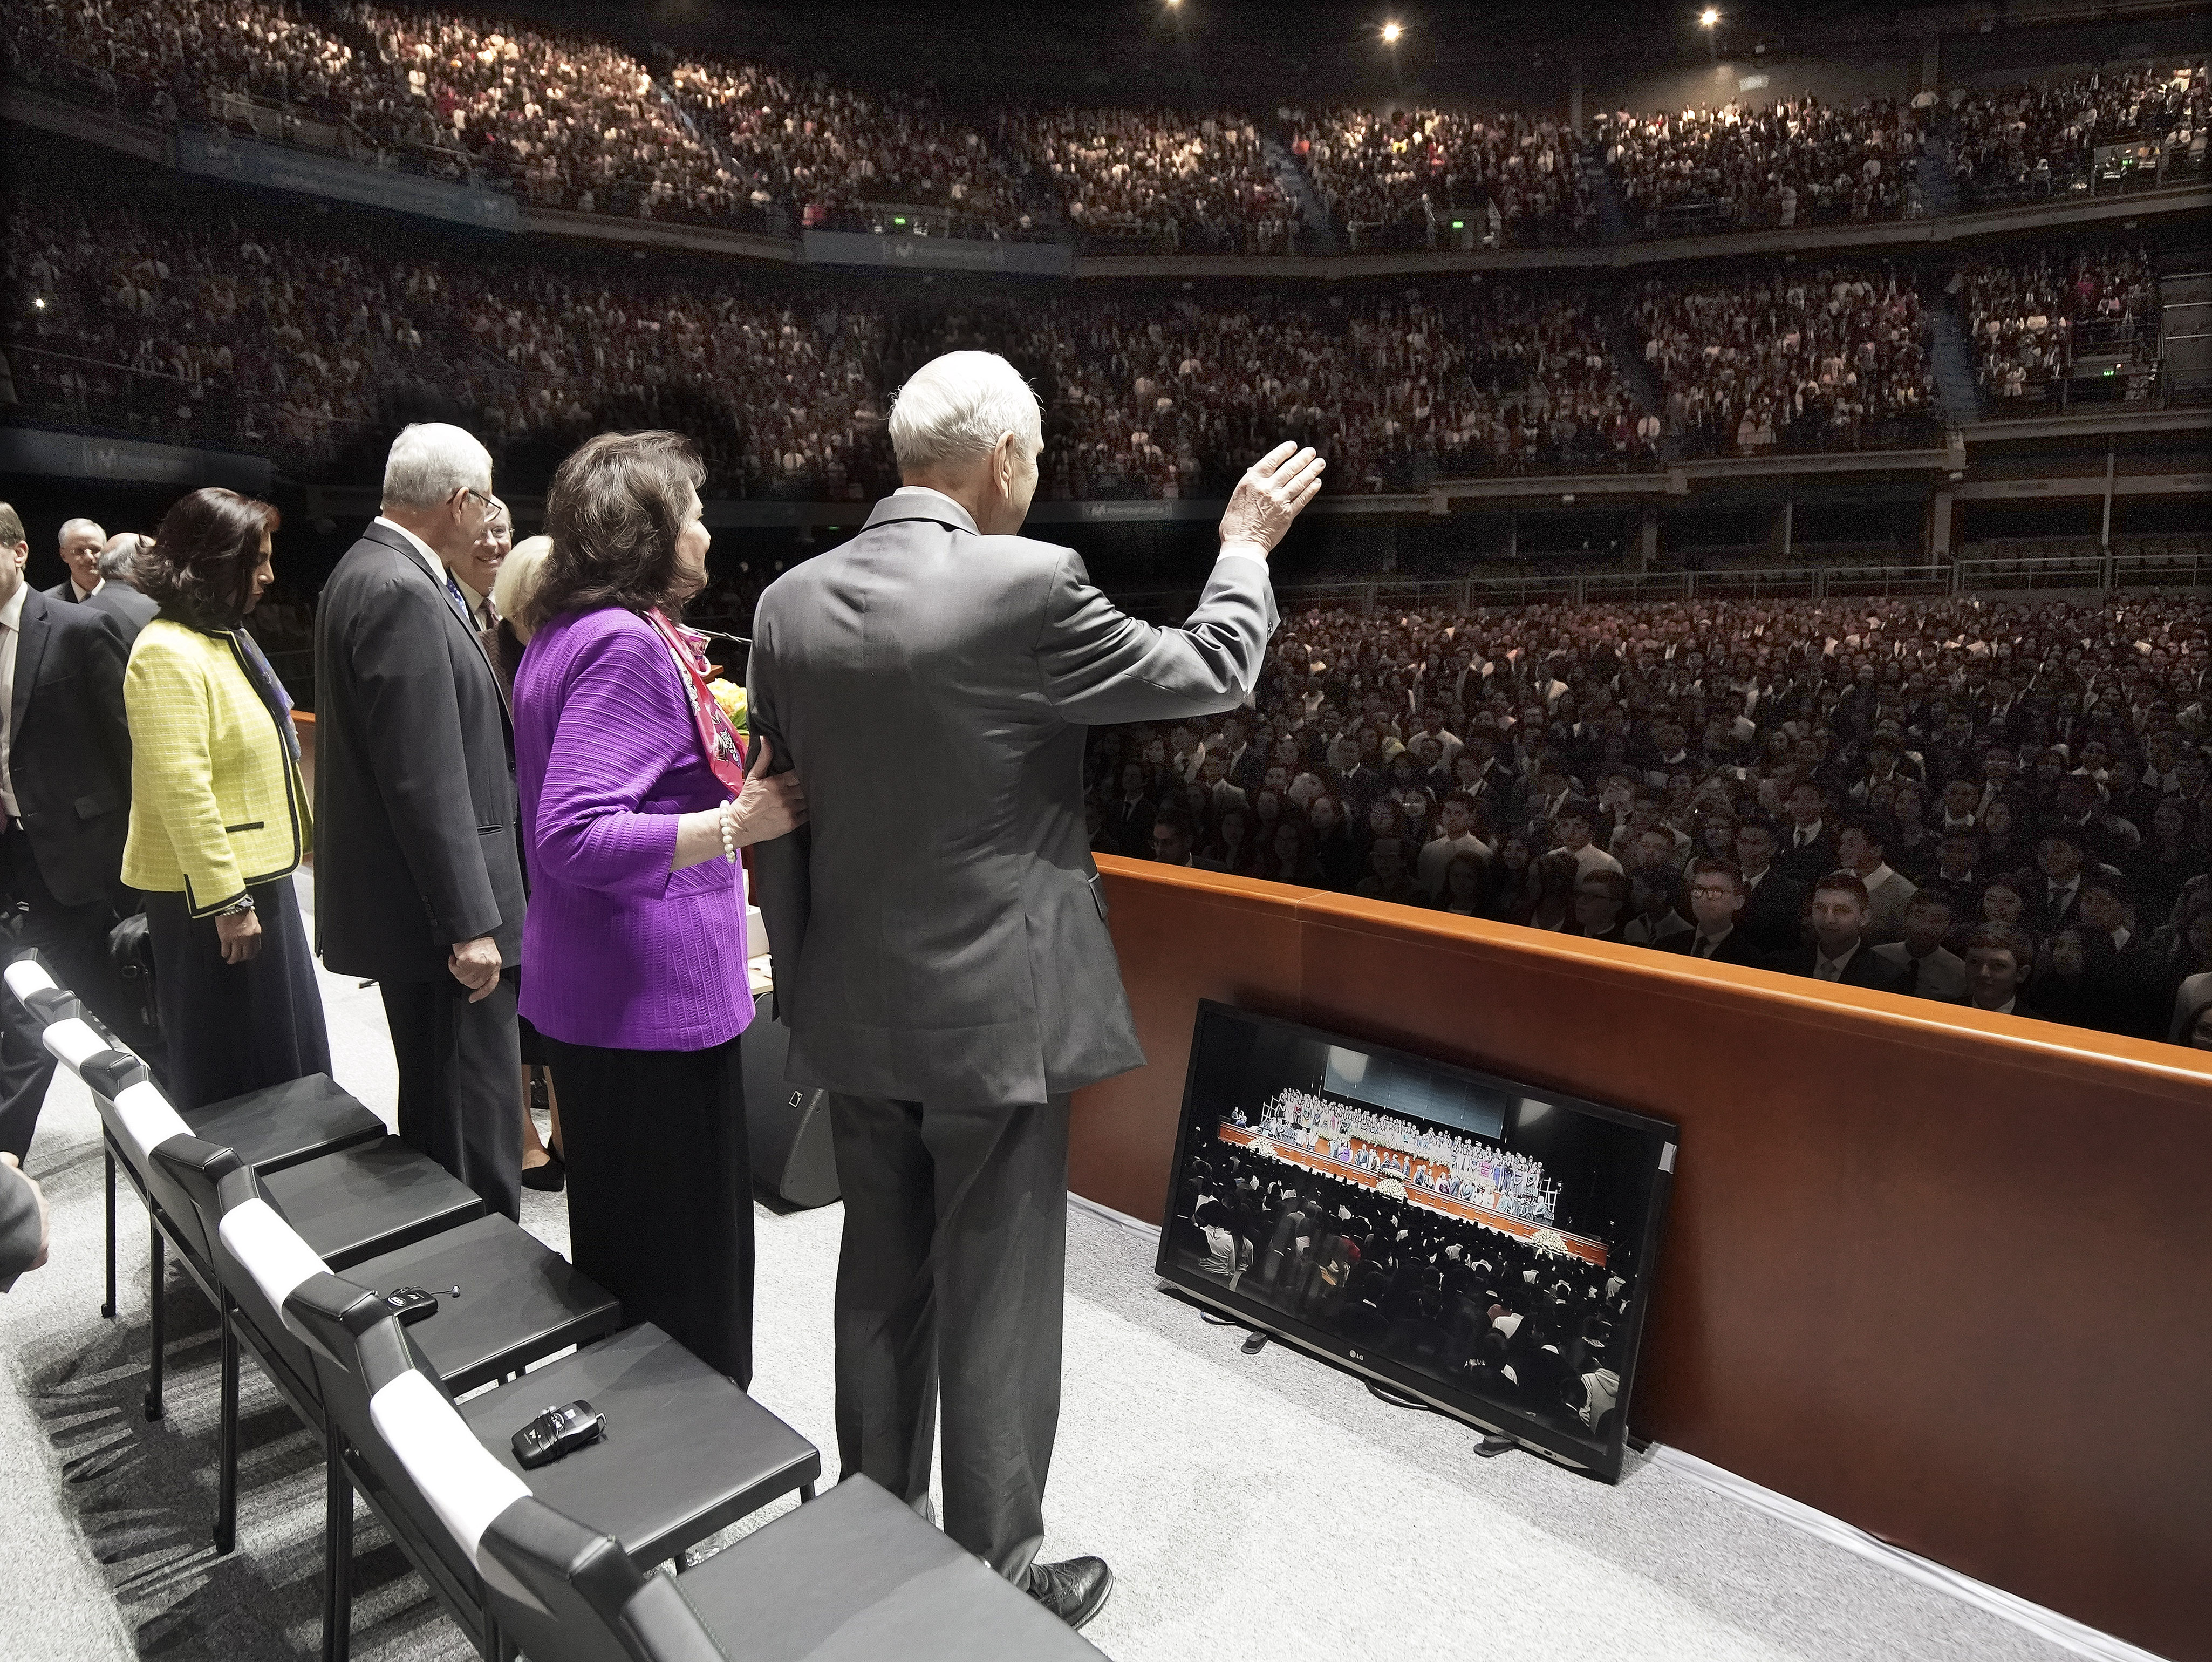 President Russell M. Nelson of The Church of Jesus Christ of Latter-day Saints and his wife, Sister Wendy Nelson, greet attendees during a devotional at Movistar Arena in Bogota, Colombia, on Sunday, Aug. 25, 2019.